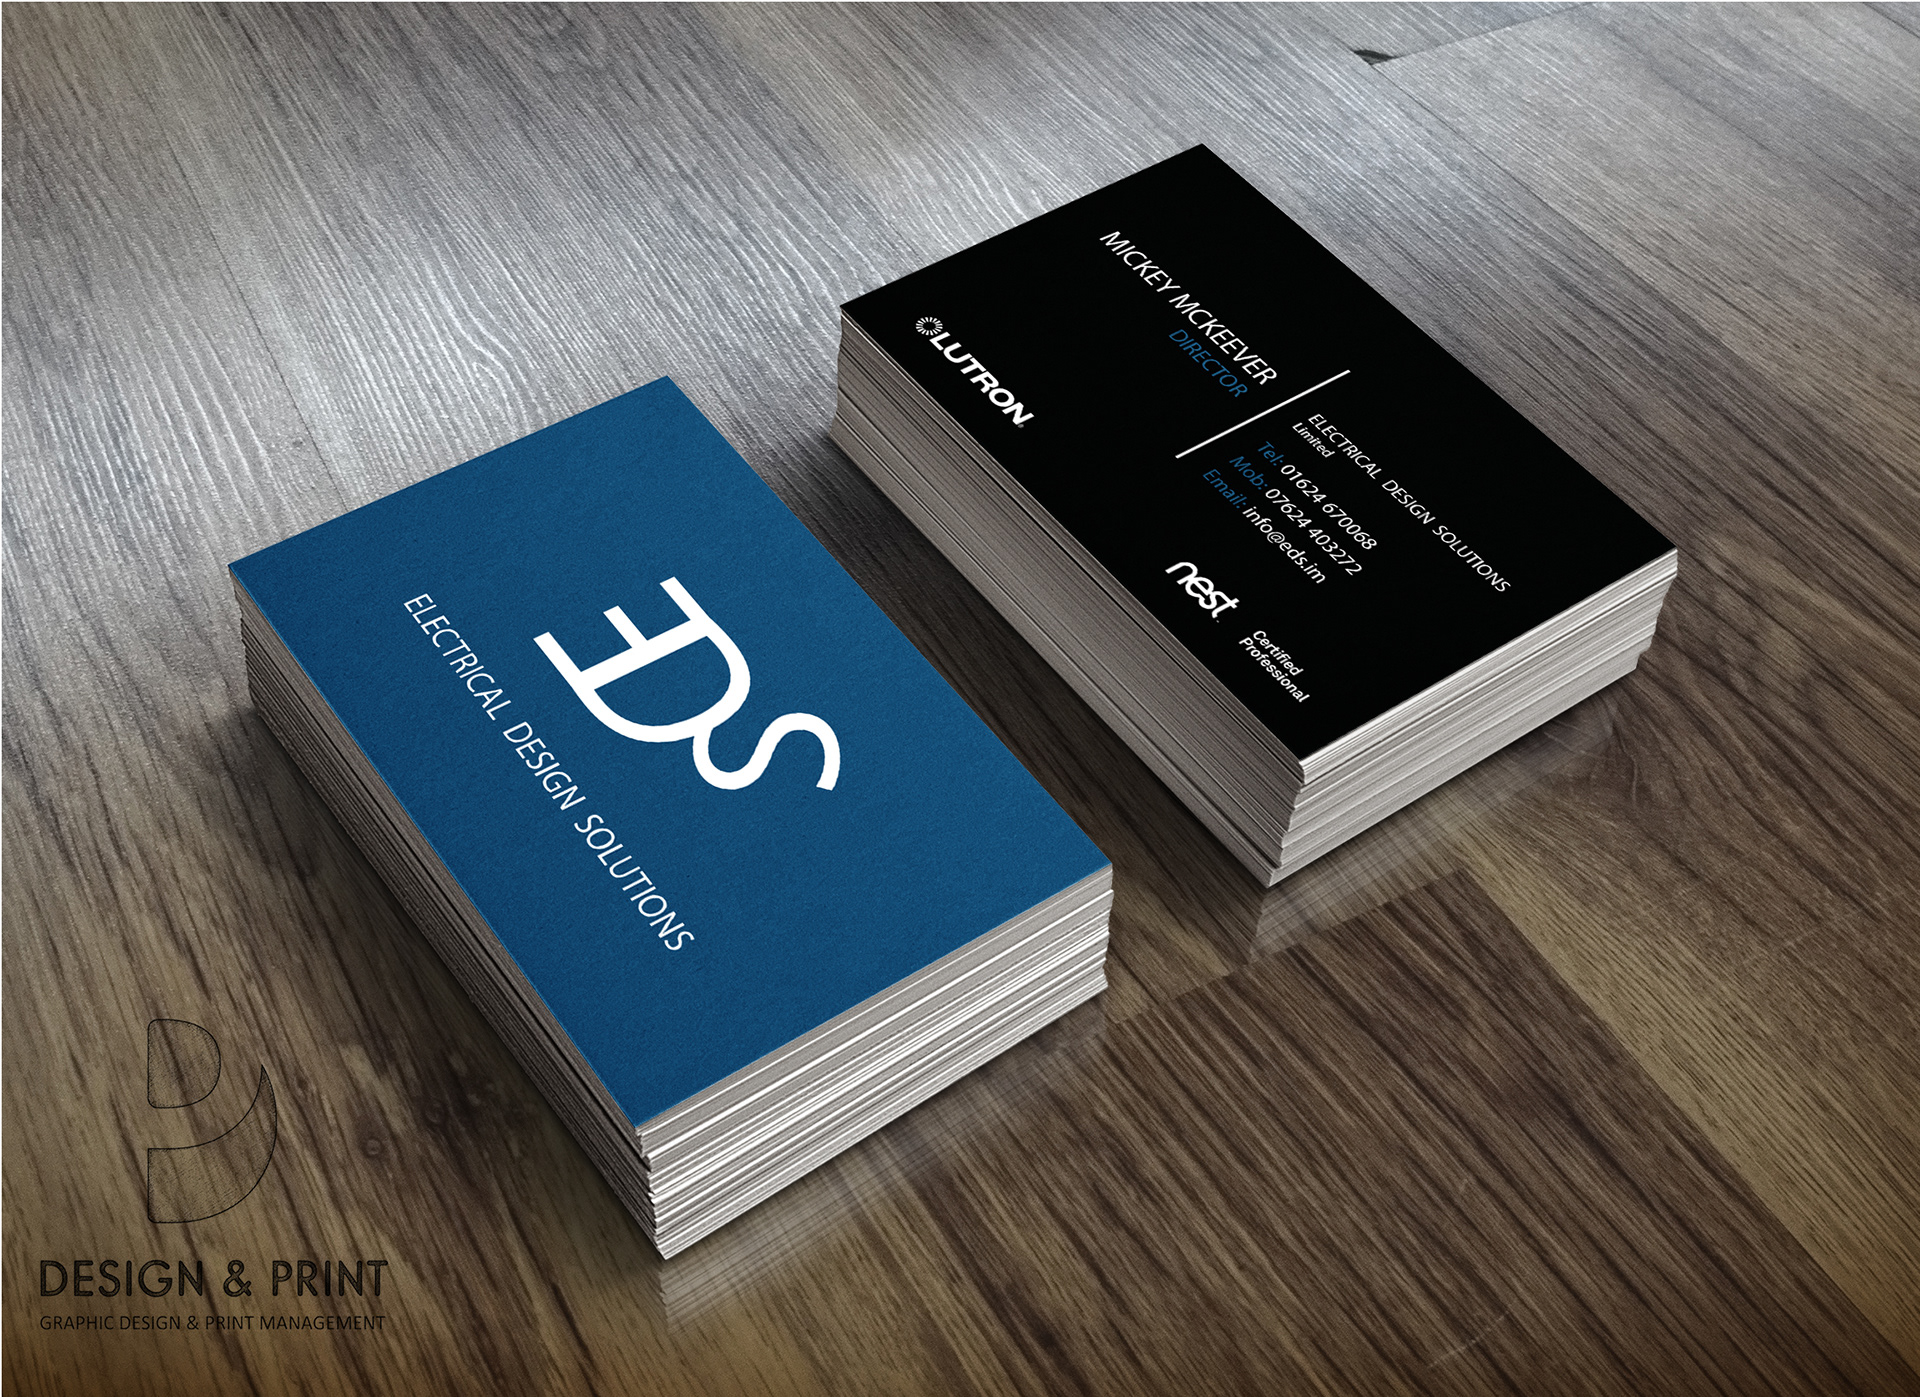 Electrician business card gallery free business cards lovely photos of electrician business card design business cards design print from electrician business card design magicingreecefo Images